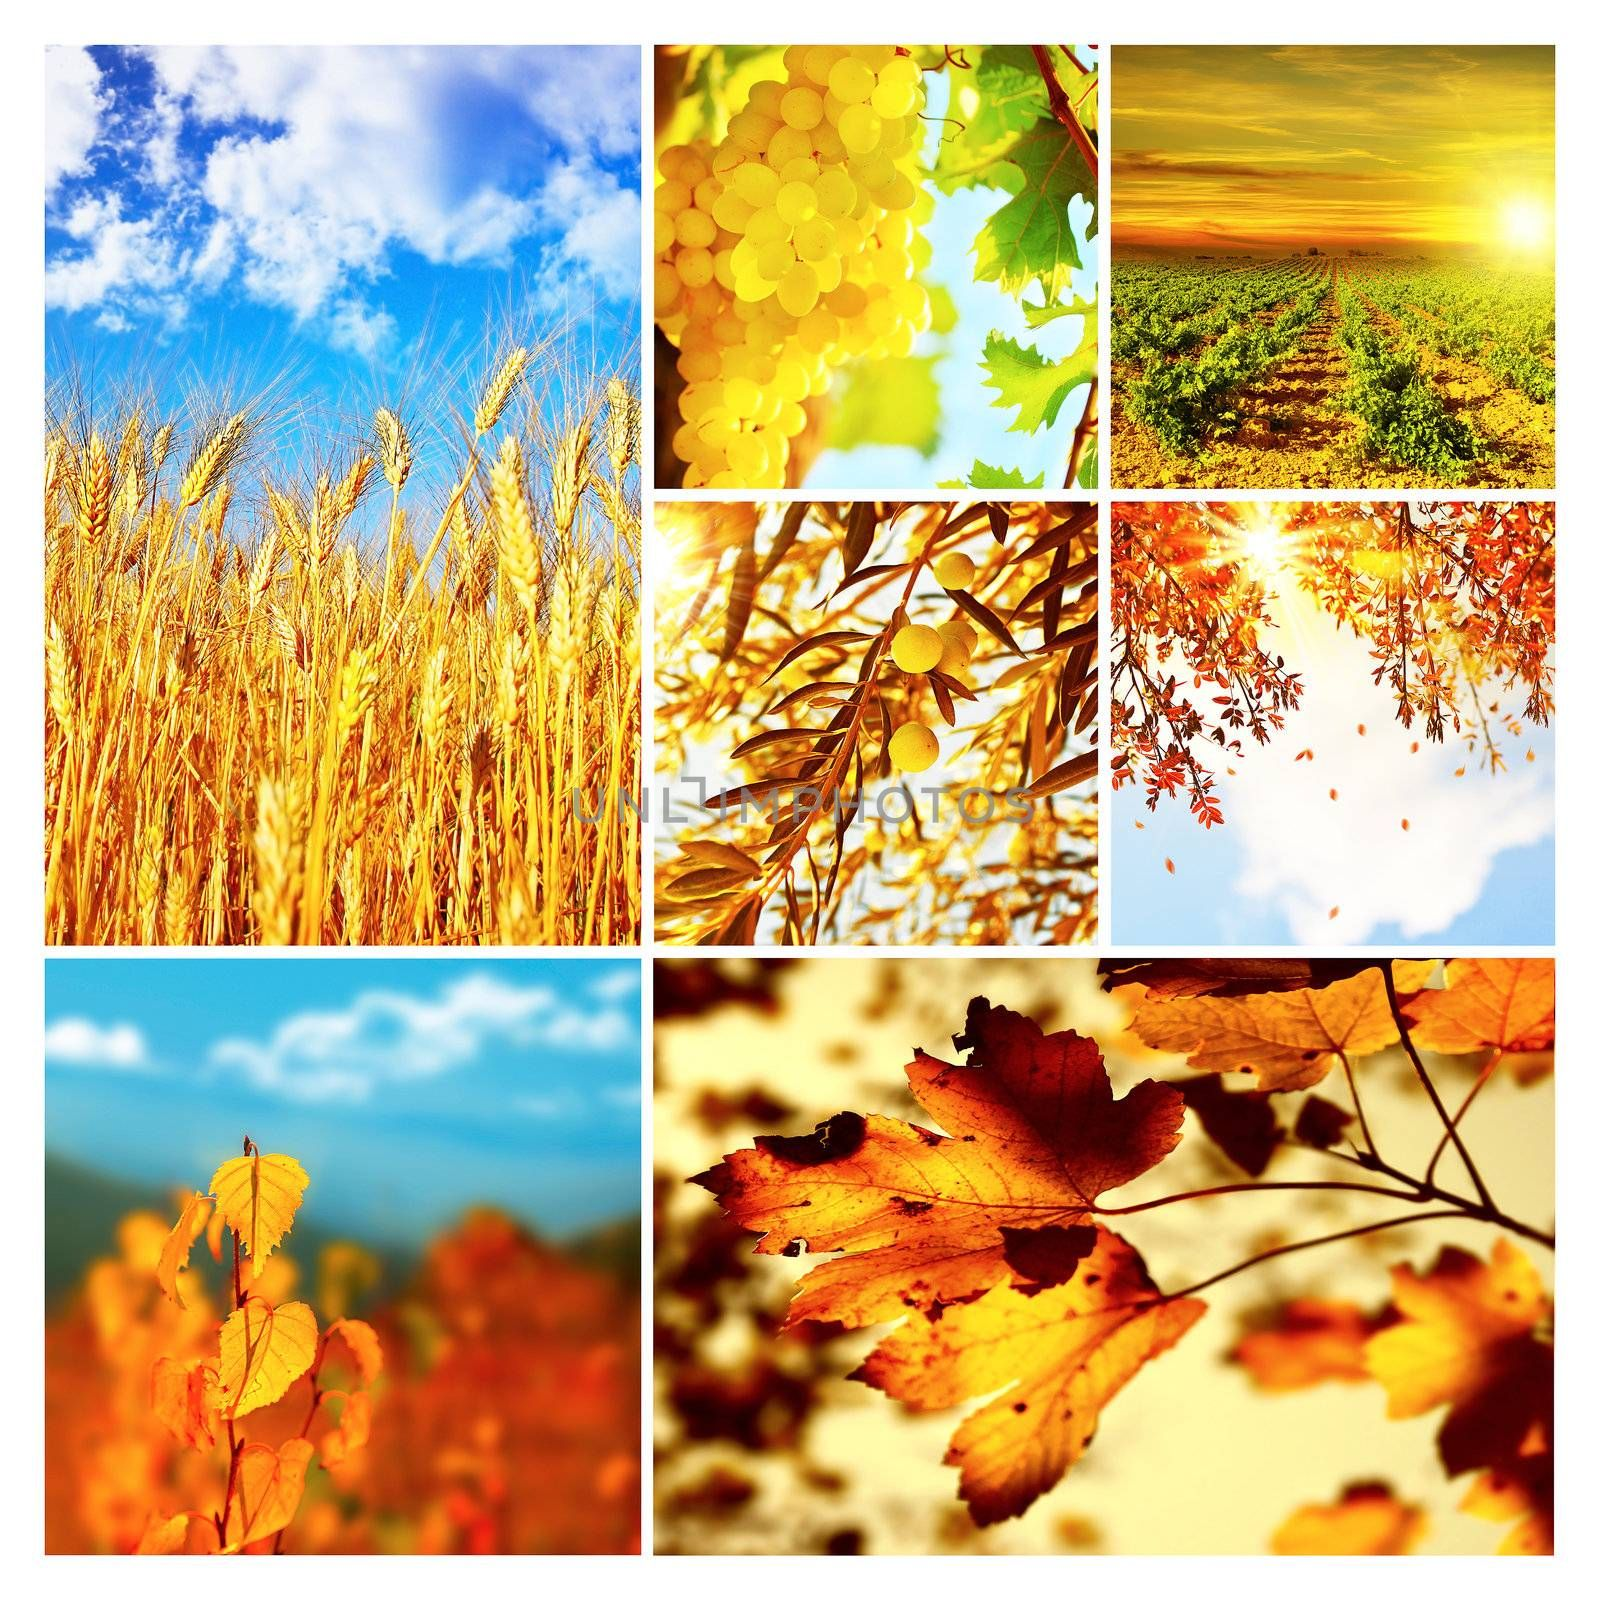 Autumn nature collage, collection of beautiful images of growing fruits, wheat and falling old dry tree leaves, seasonal time of the year, agriculture at harvest